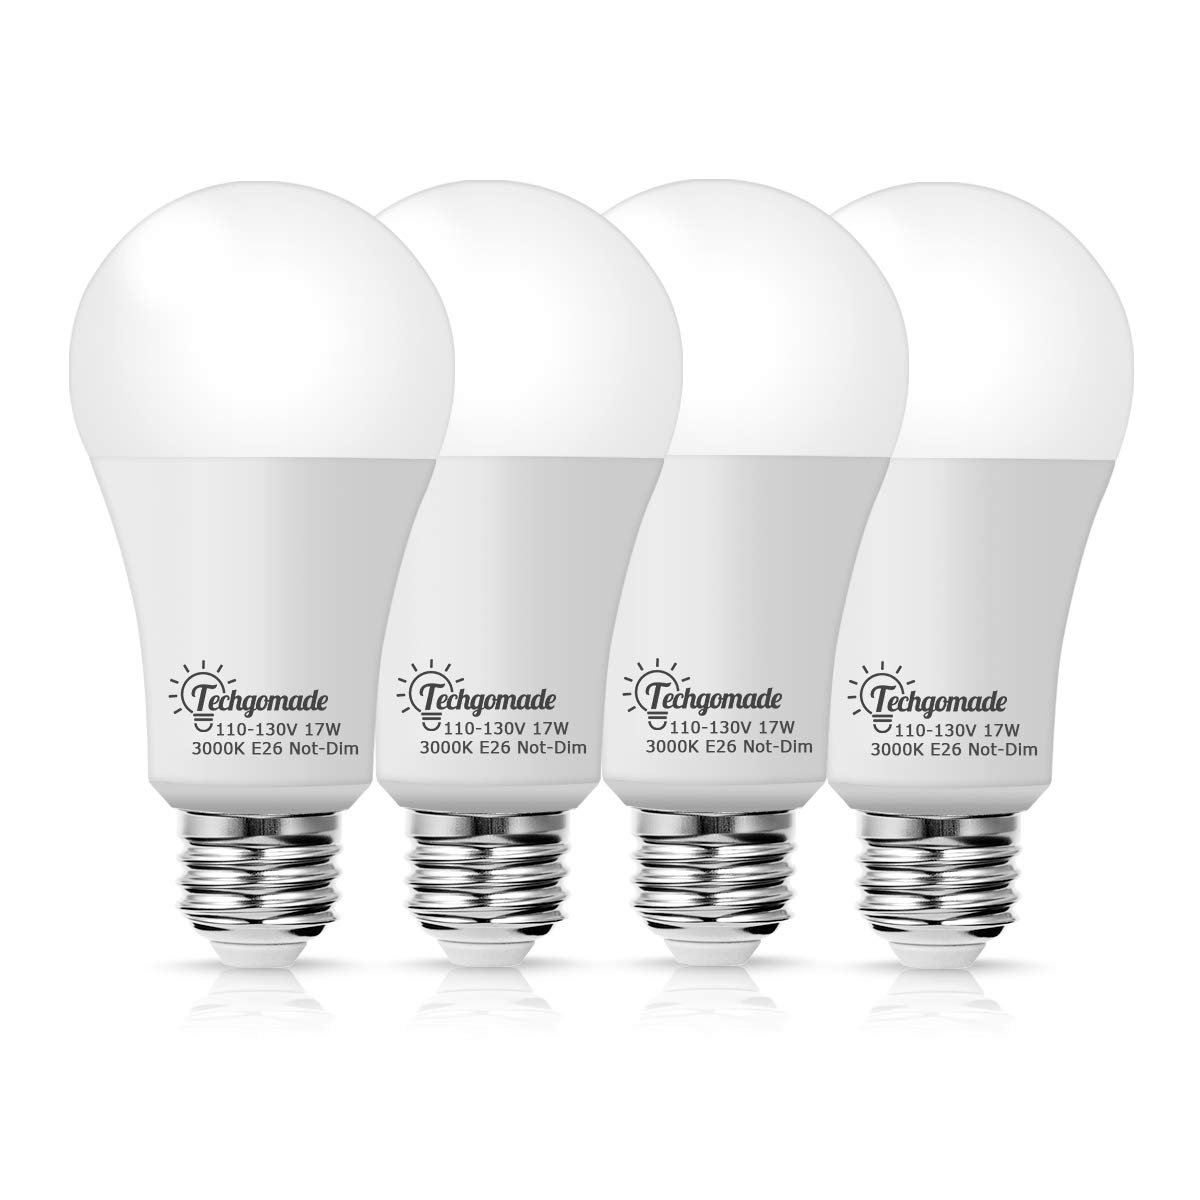 Techgomade 17W A19 LED Light Bulb, 200W Incandescent Bulb Equivalent, 1600LM High Brightness, Soft White 3000K, for Home or Outdoor Lighting, Porch, Hallway, Not-Dimmable LED, 4 Pack